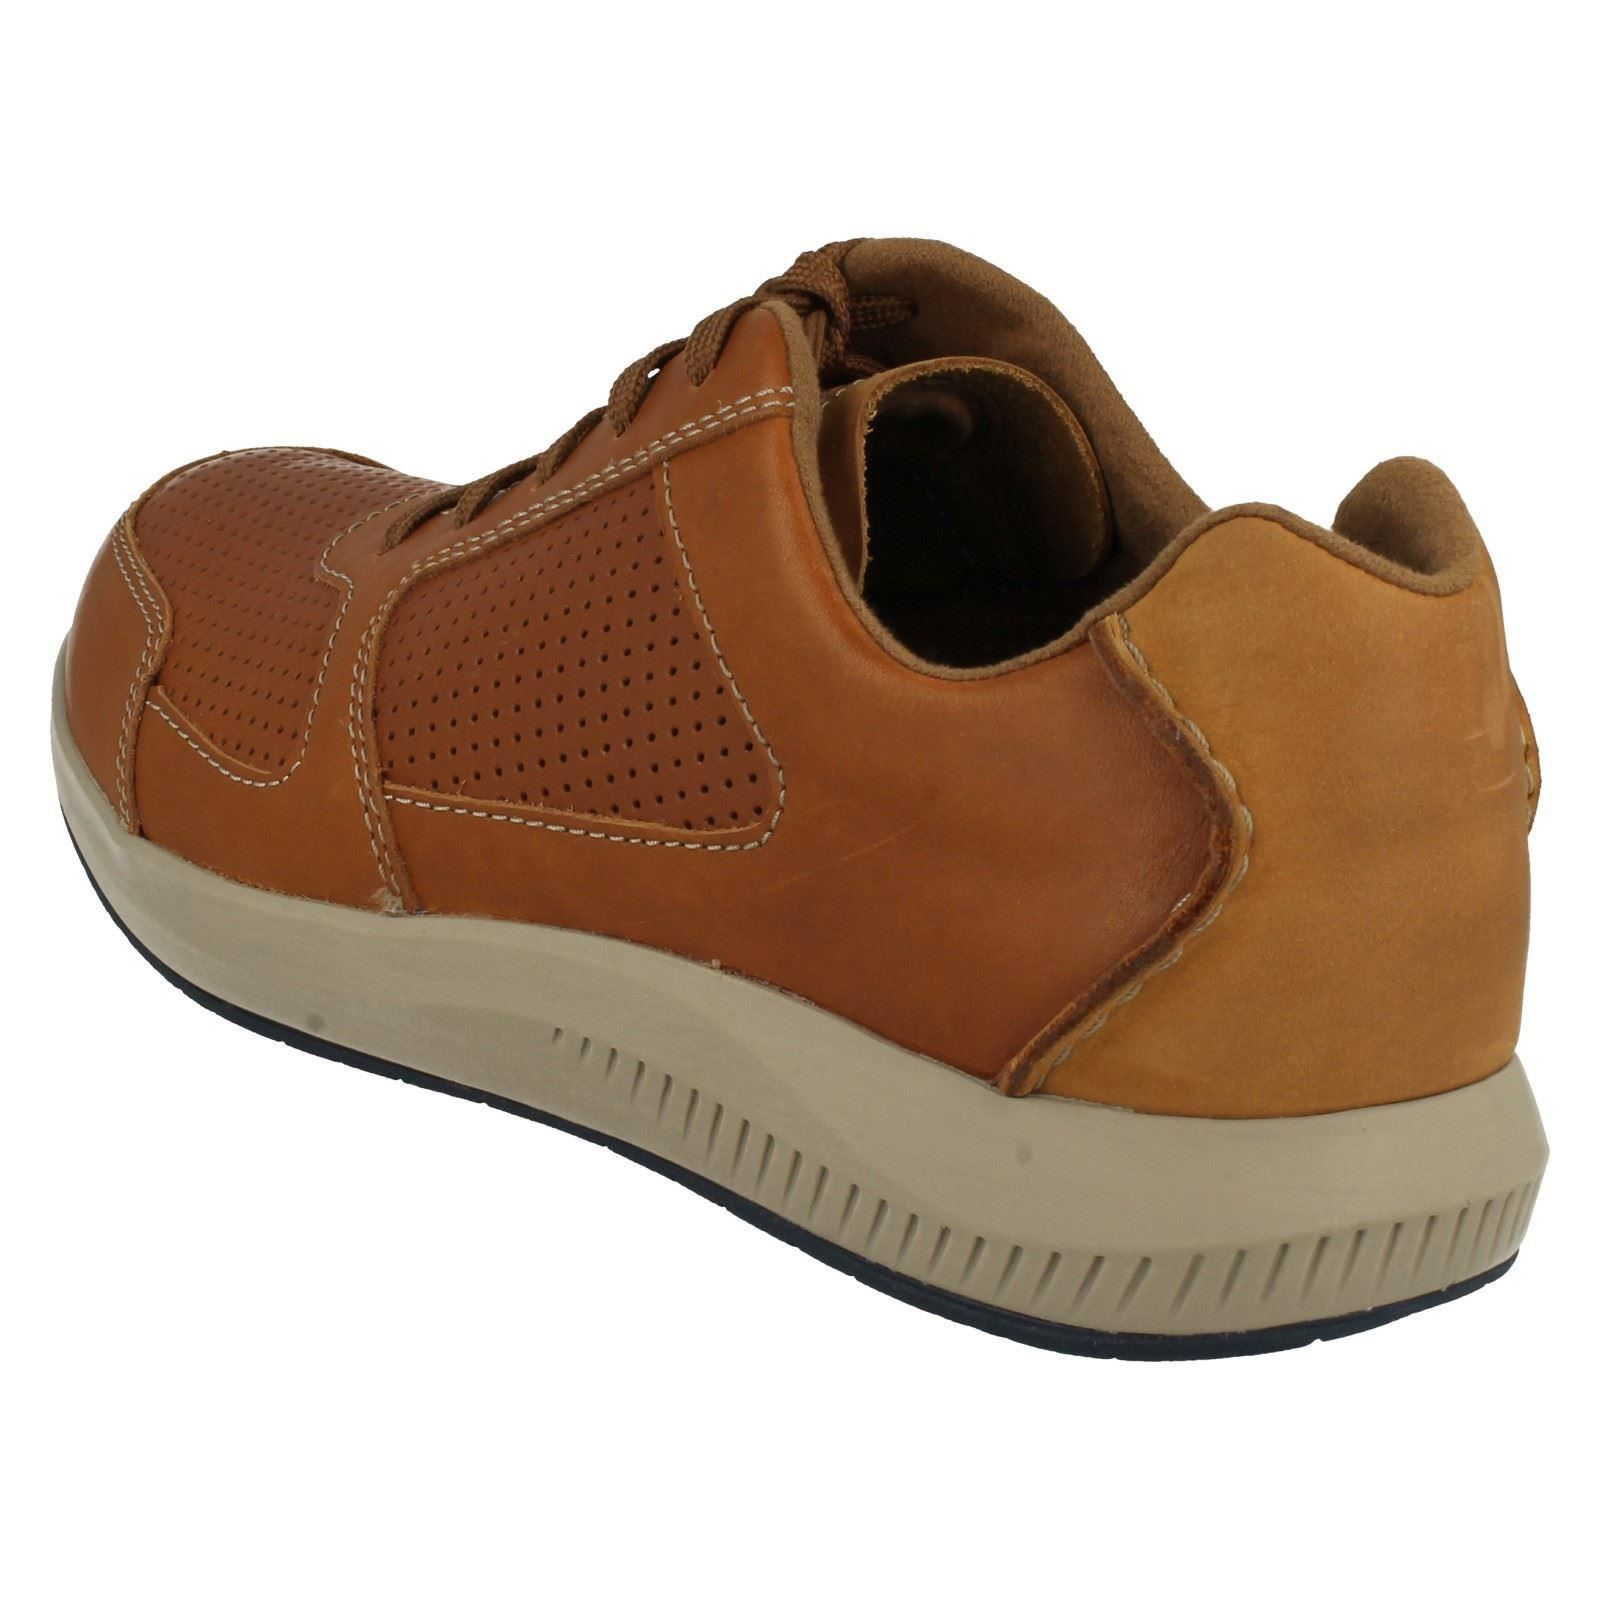 Mens Clarks Casual Casual Clarks Shoes Sirtis Mix 1074d0